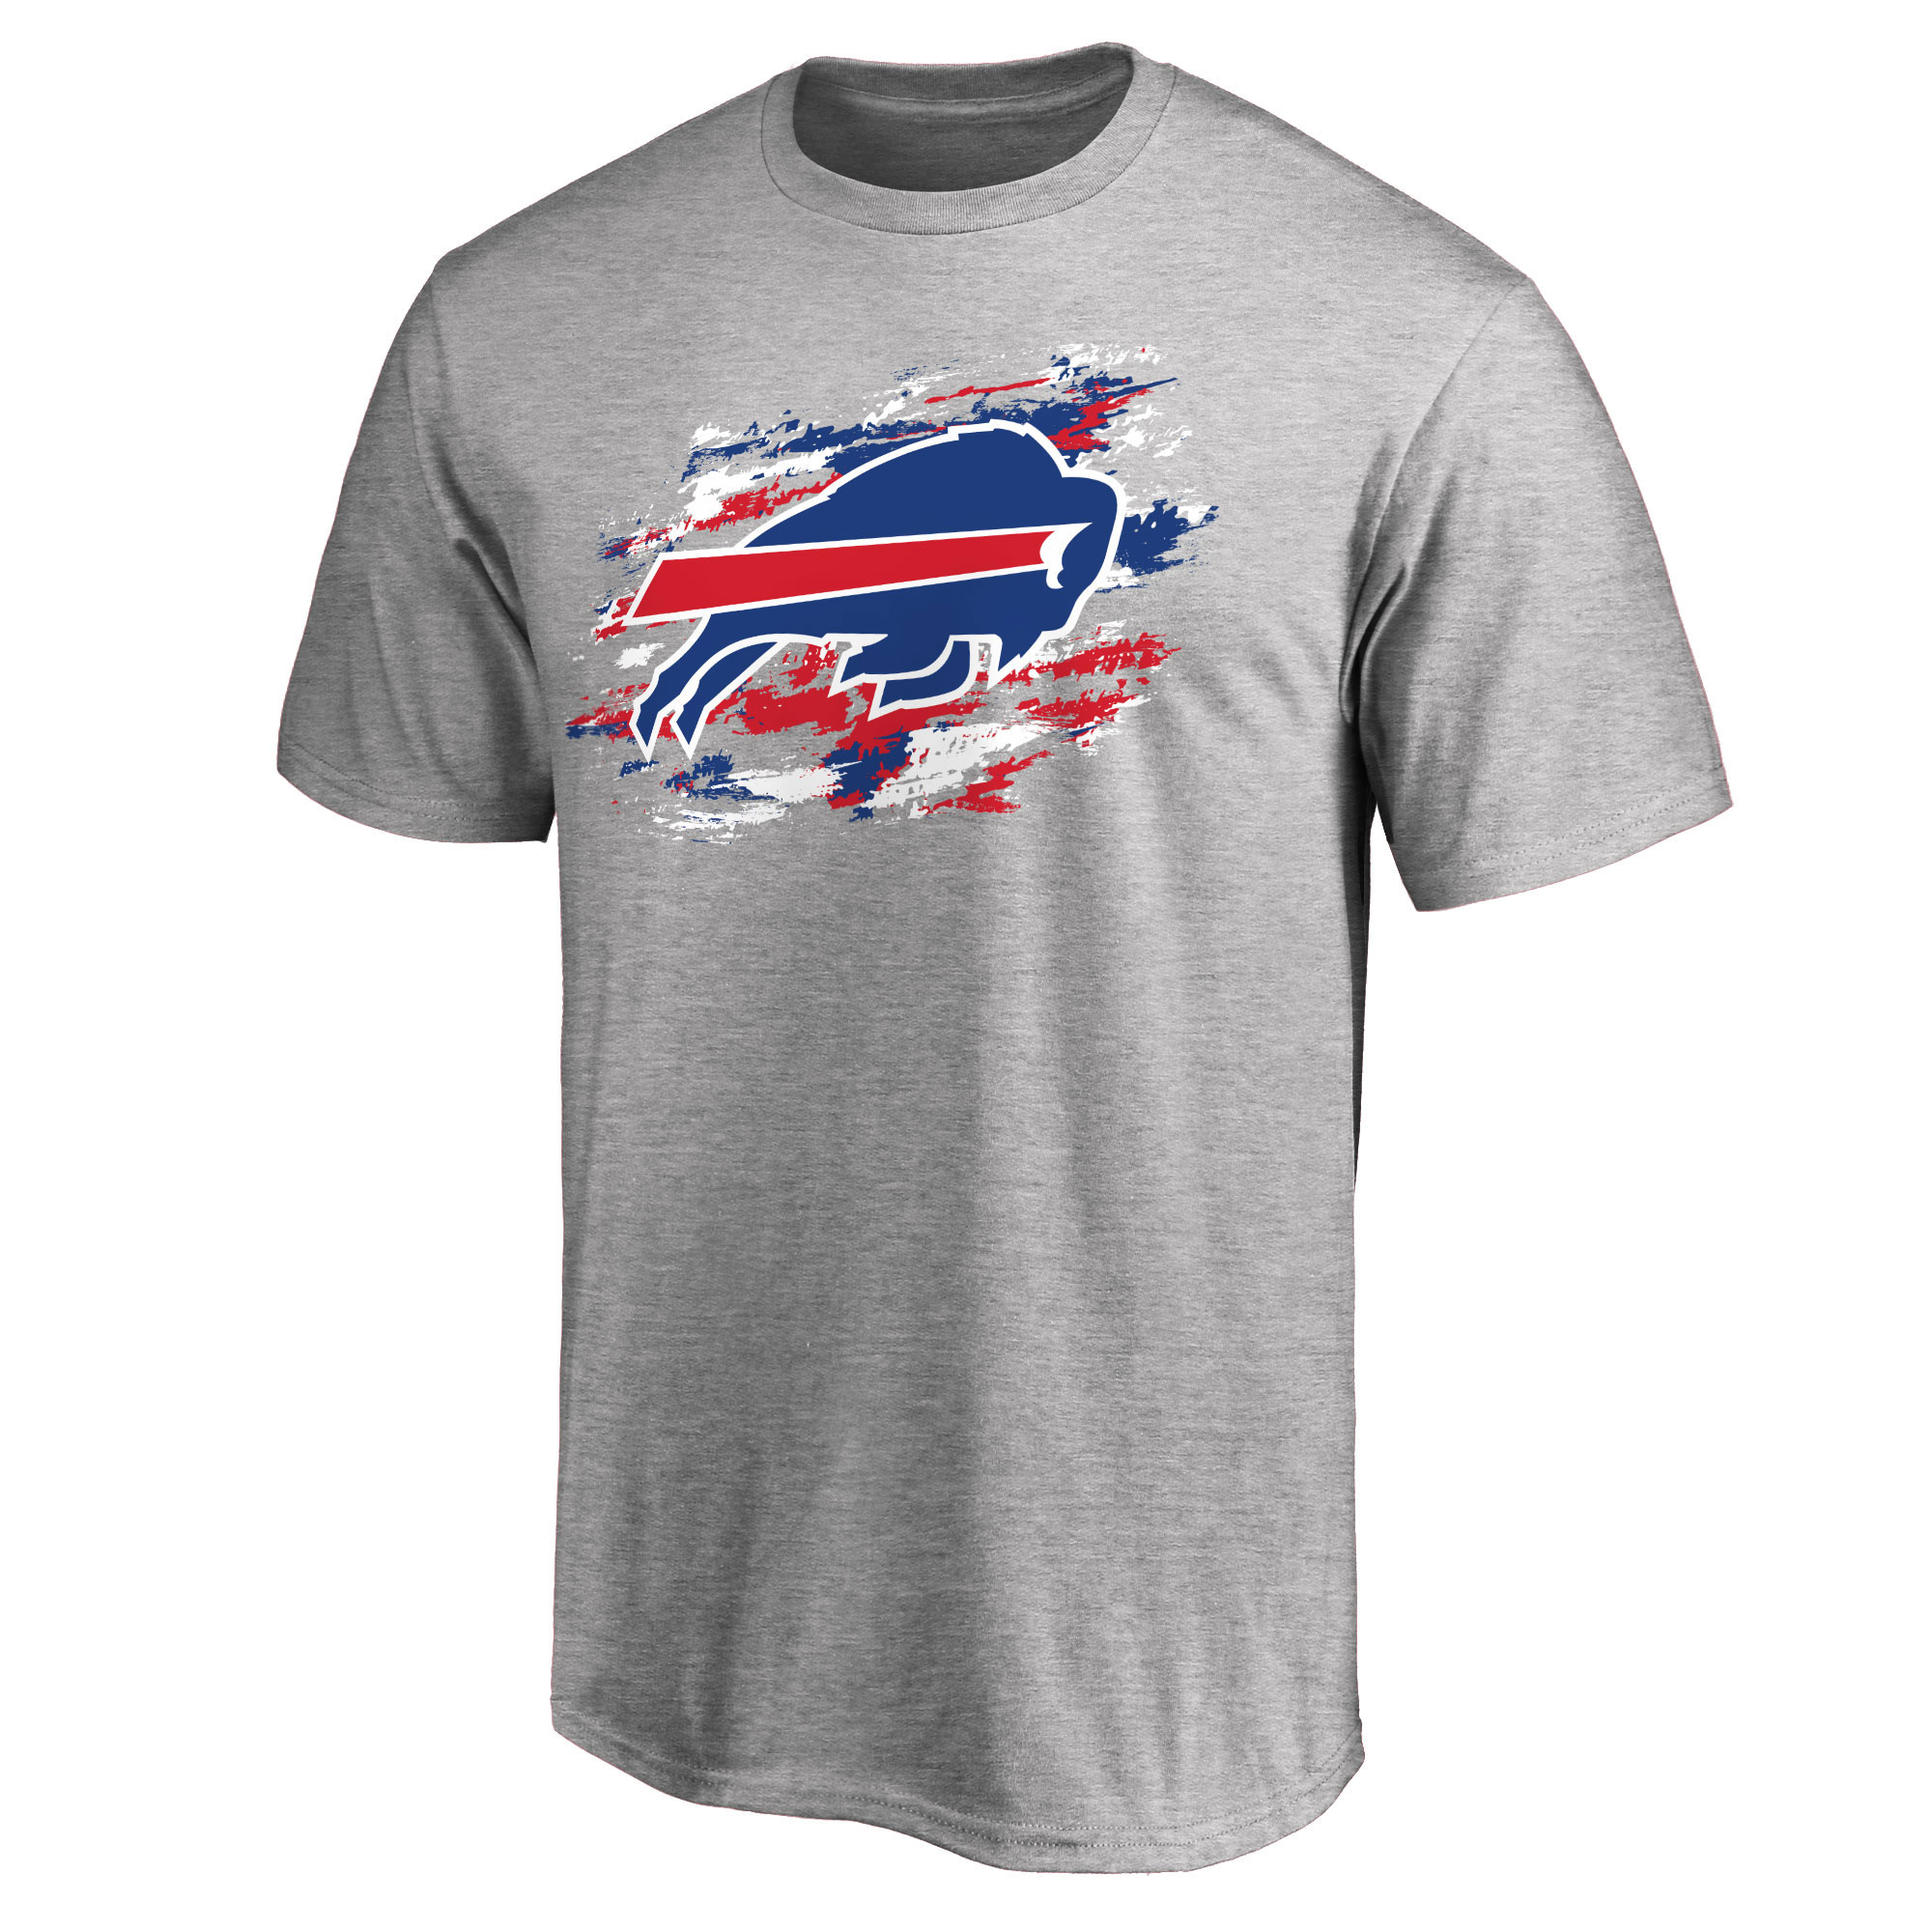 Buffalo Bills NFL Pro Line True Color T-Shirt - Heathered Gray